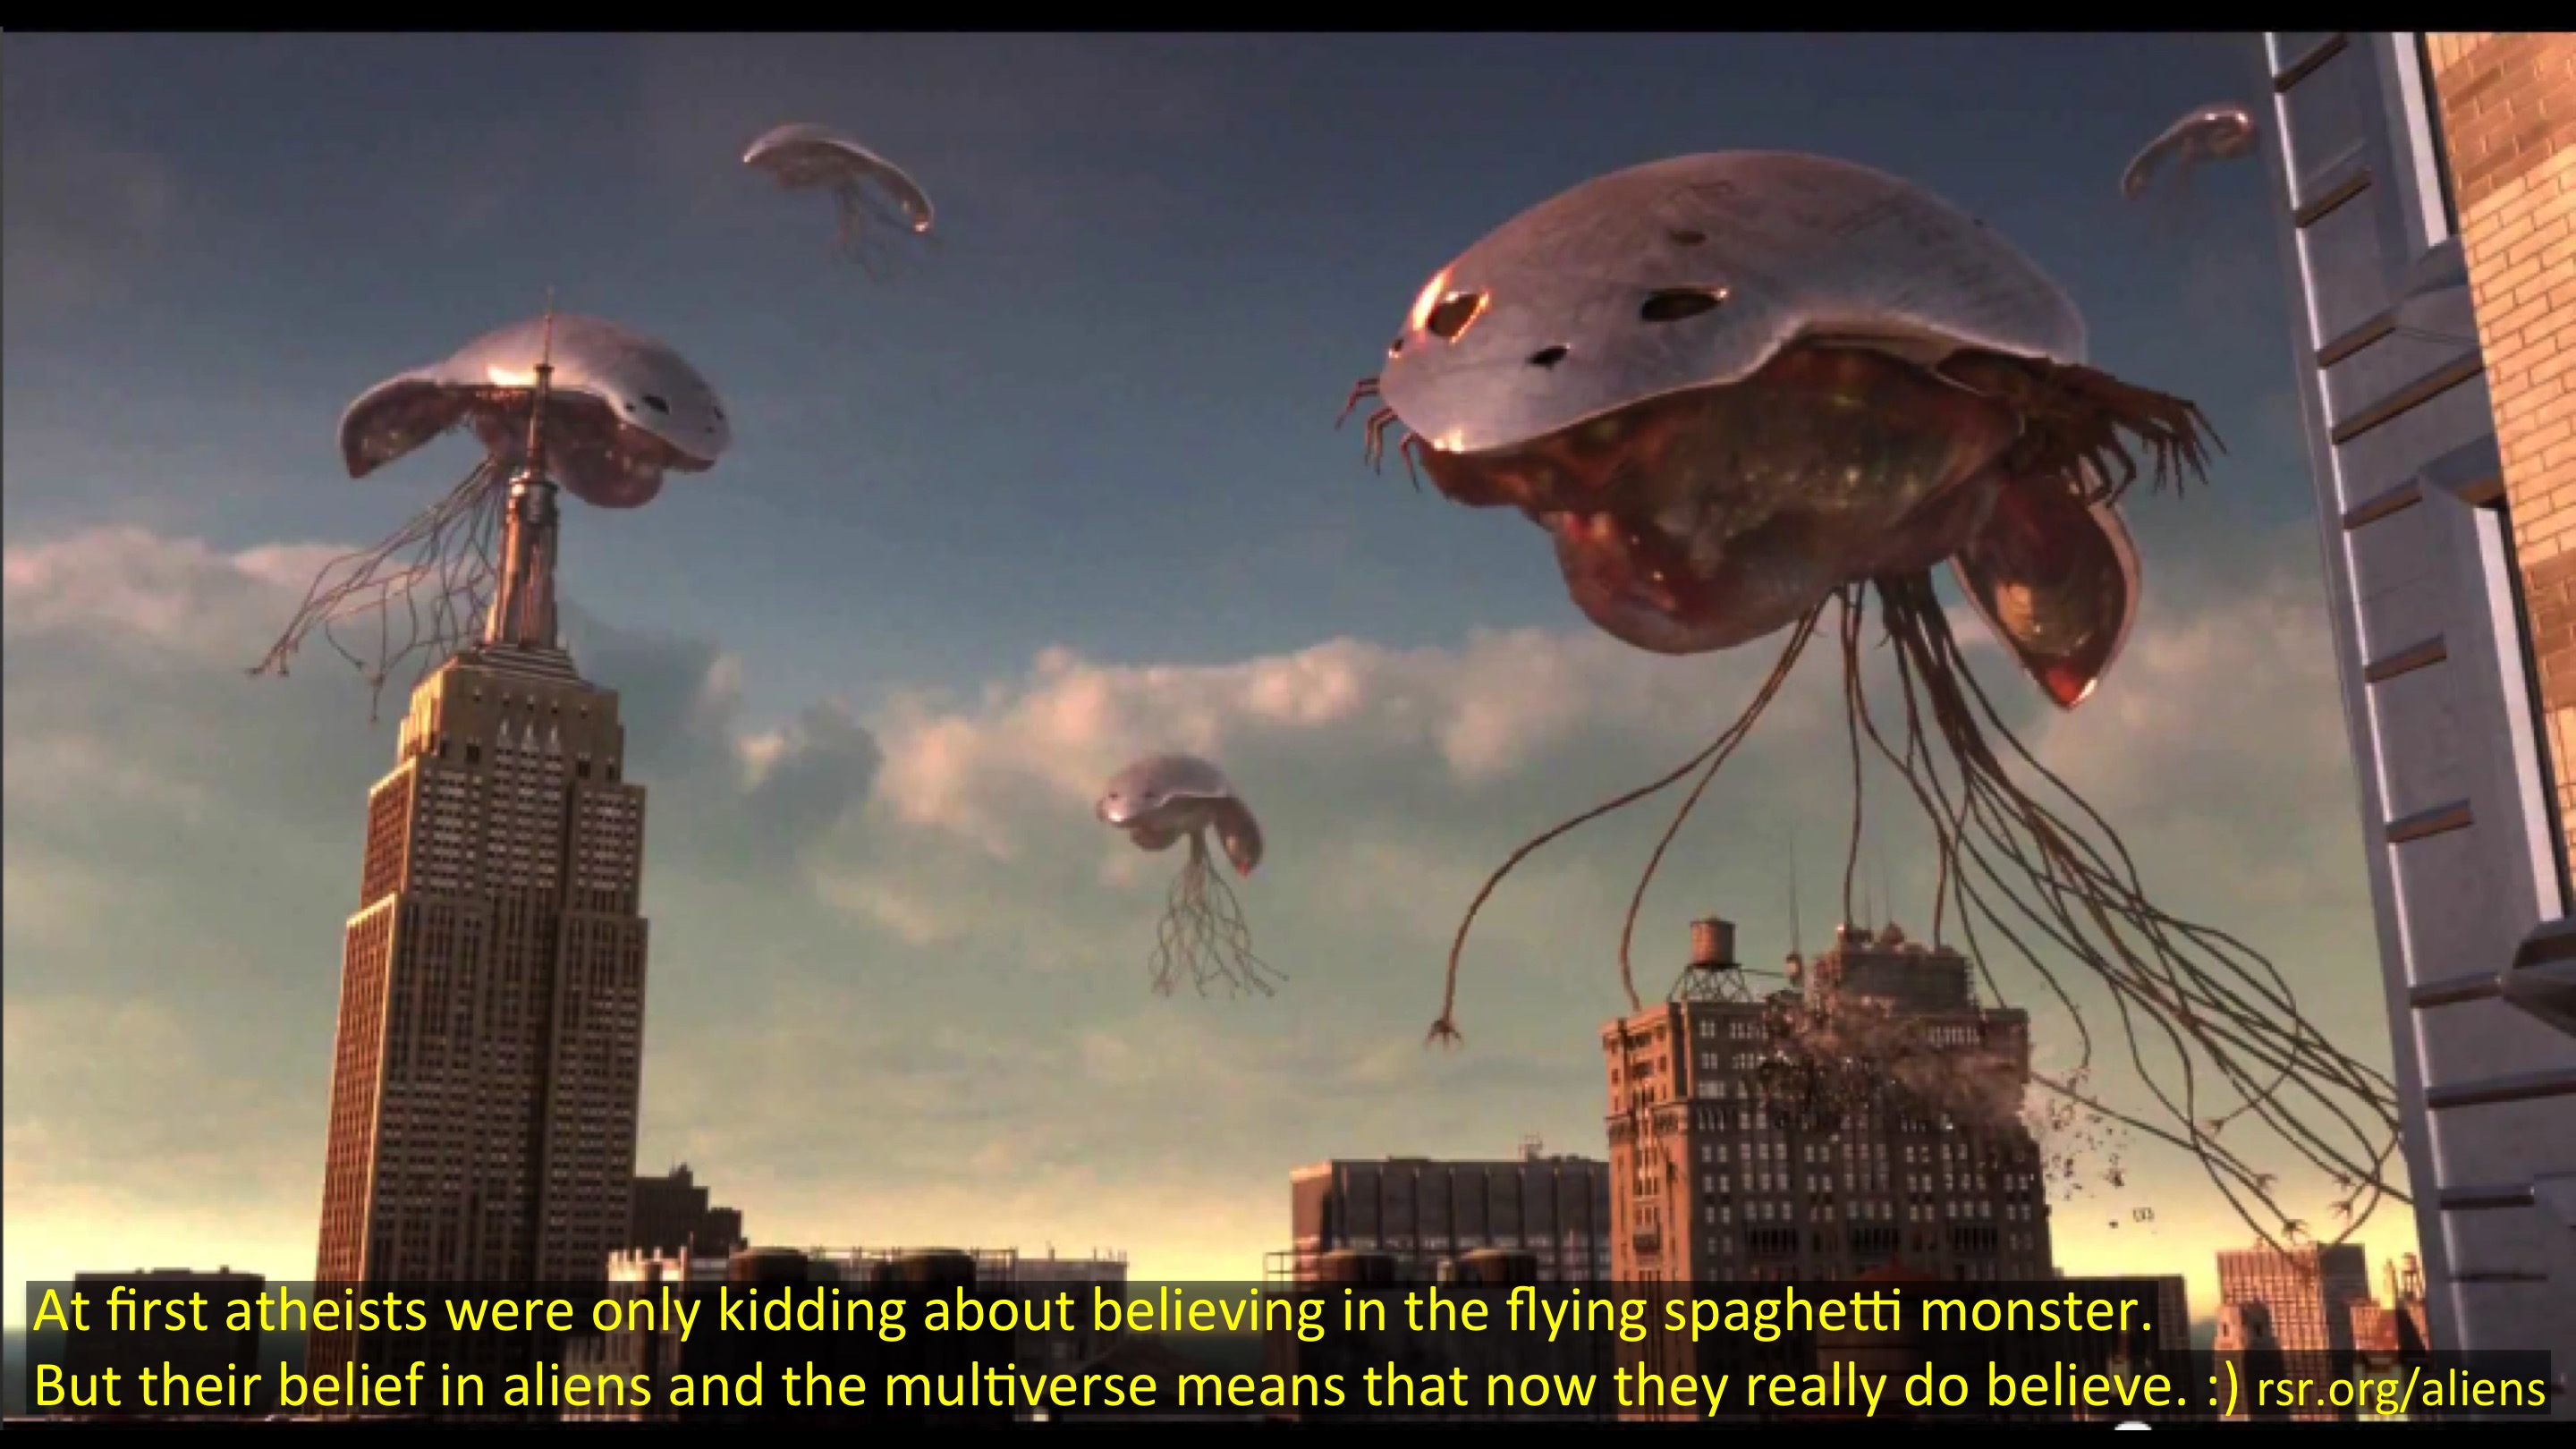 With their multiverse, now atheists really DO believe in the flying spaghetti monster!